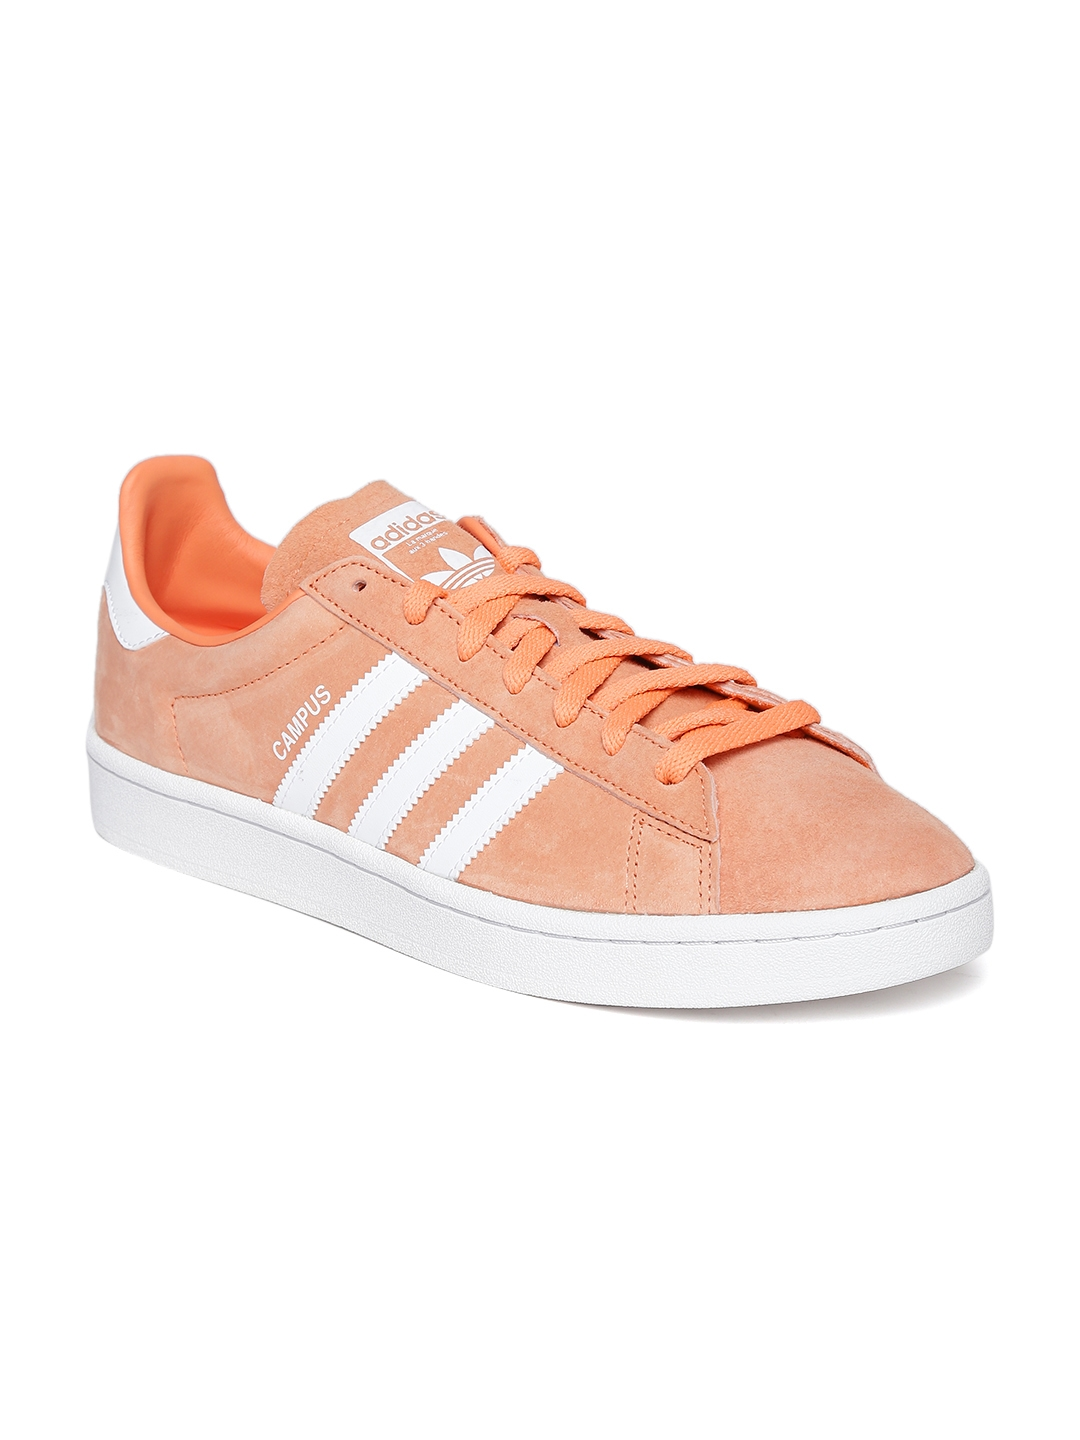 more photos d1025 88a30 ADIDAS Originals Men Peach-Coloured Campus Leather Sneakers